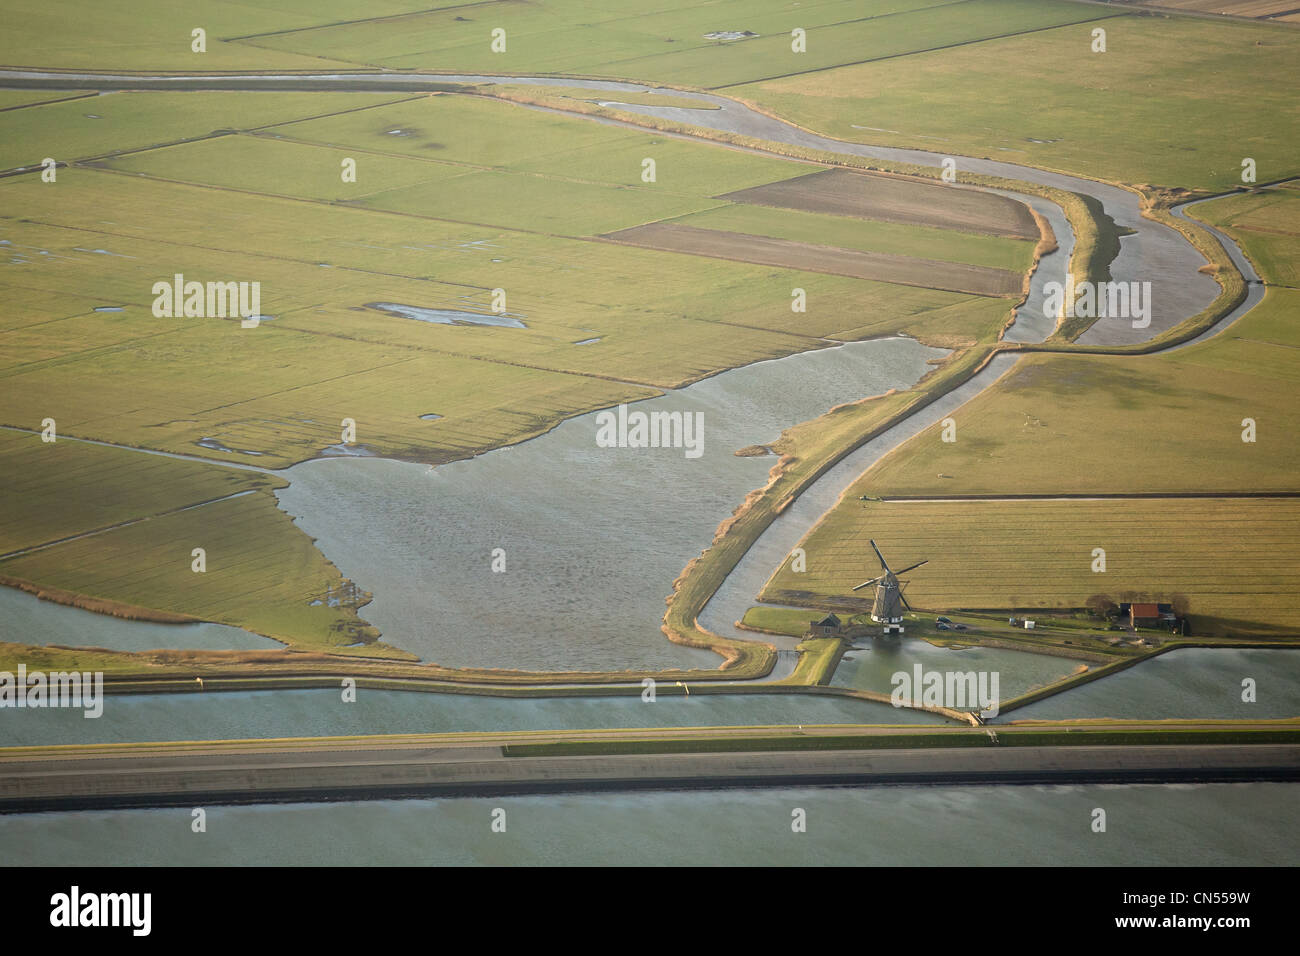 Netherlands, North Holland, Texel, the Eastern coast of the island (aerial view) - Stock Image